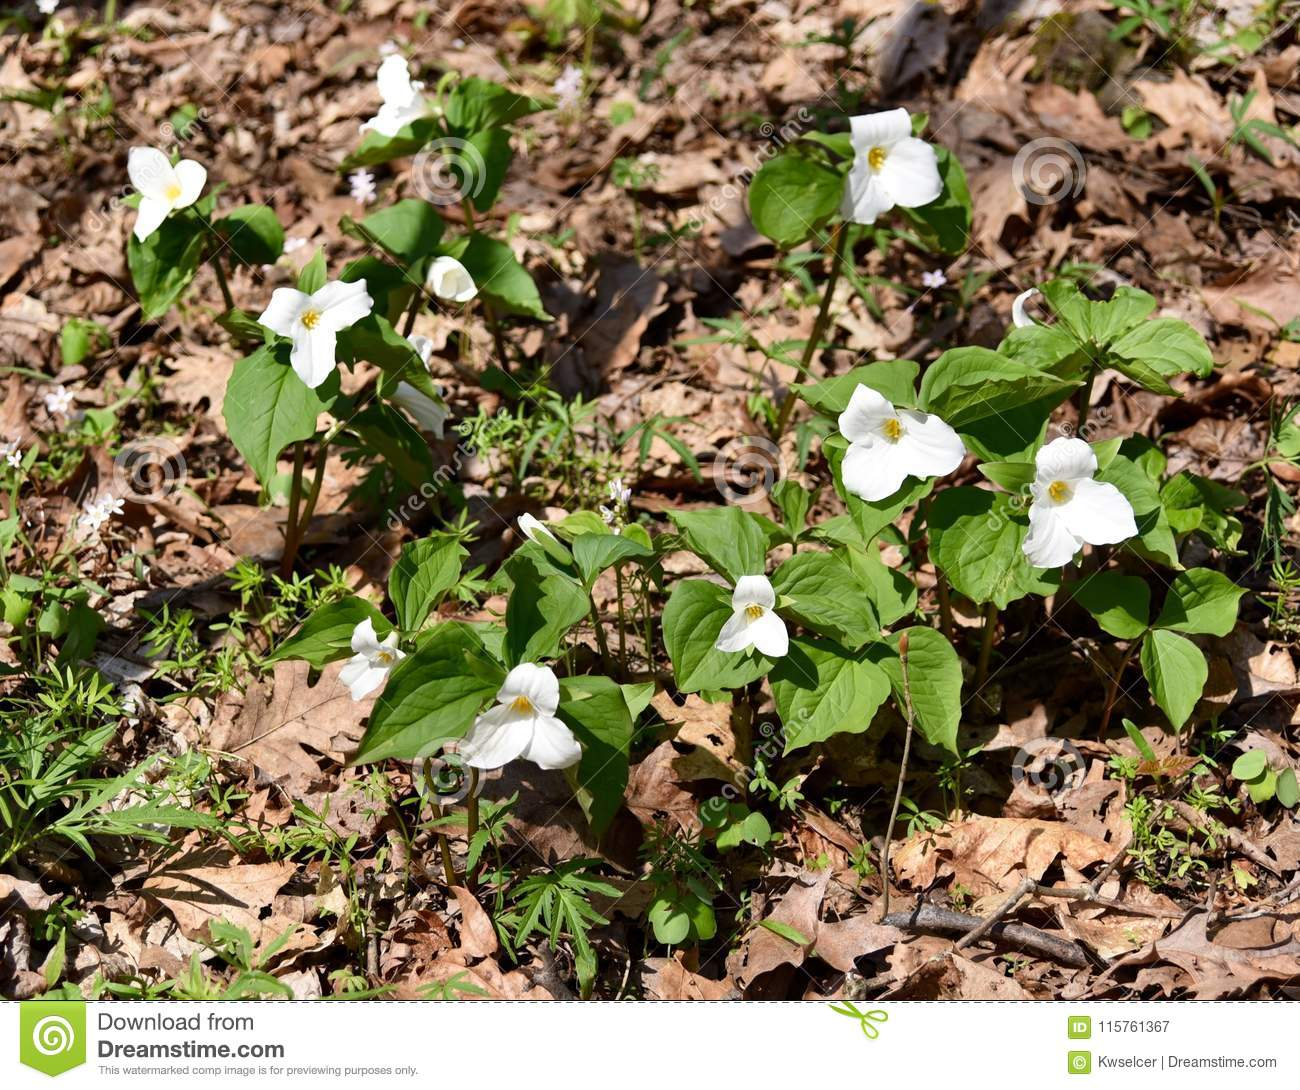 A Cluster Of Large White Trillium Plants Emerging In A Spring